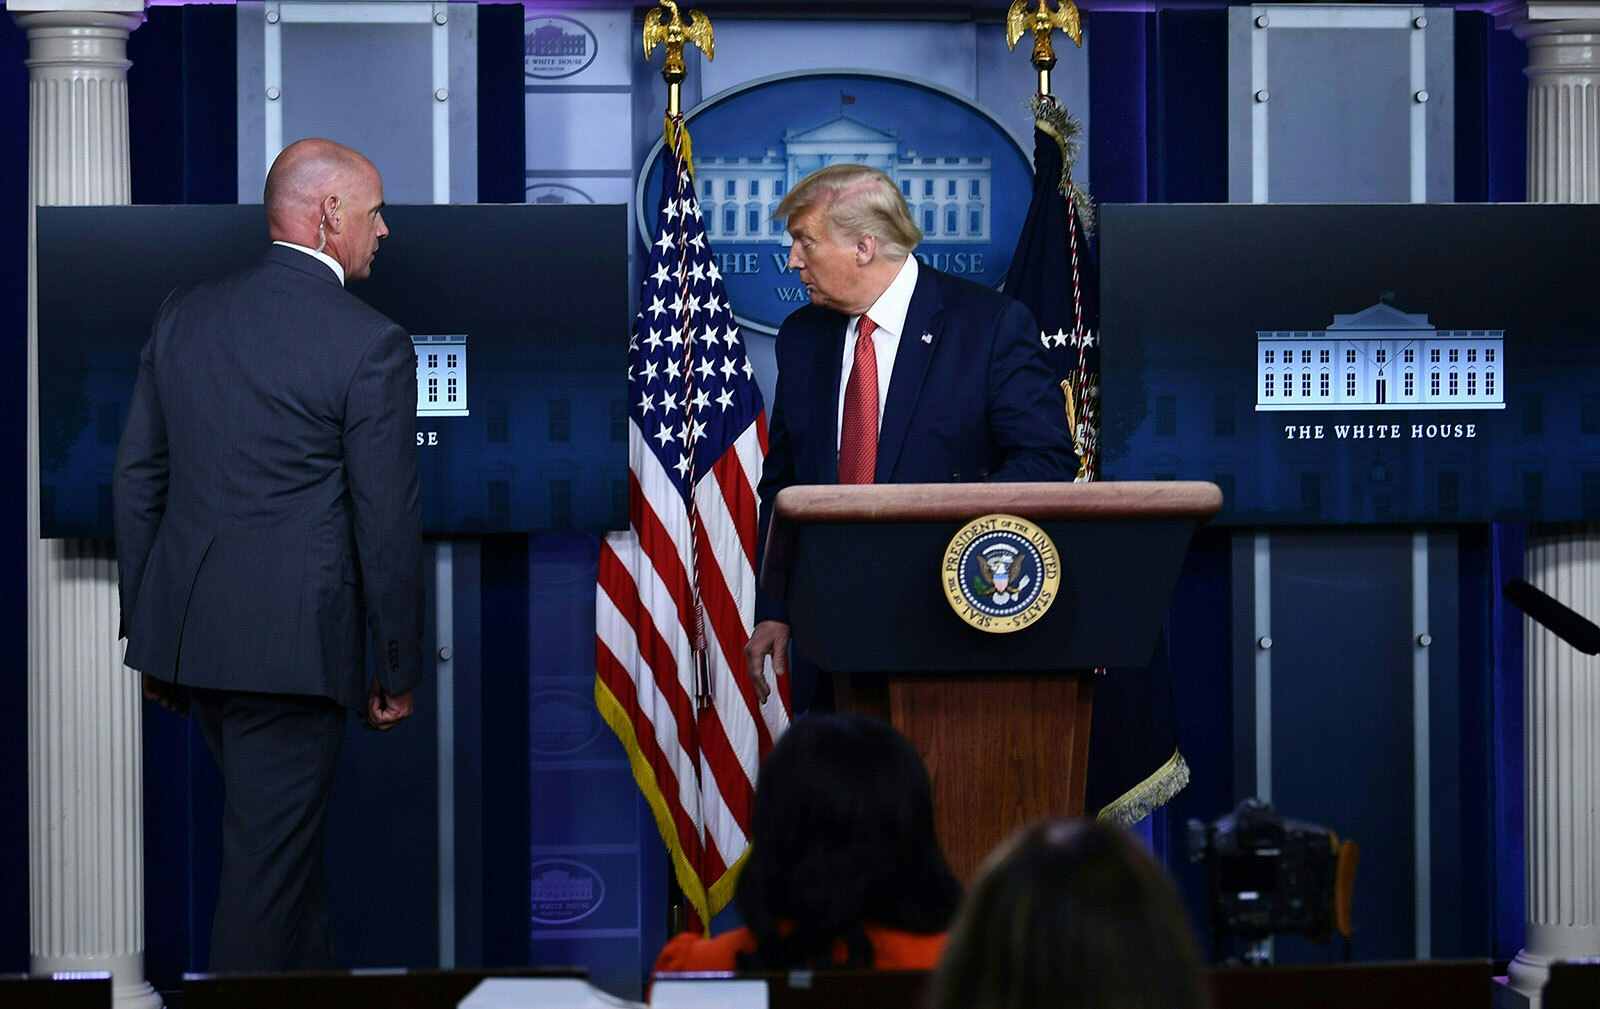 President Donald Trump is being removed from the Brady Briefing Room of the White House in Washington on Monday, August 10.